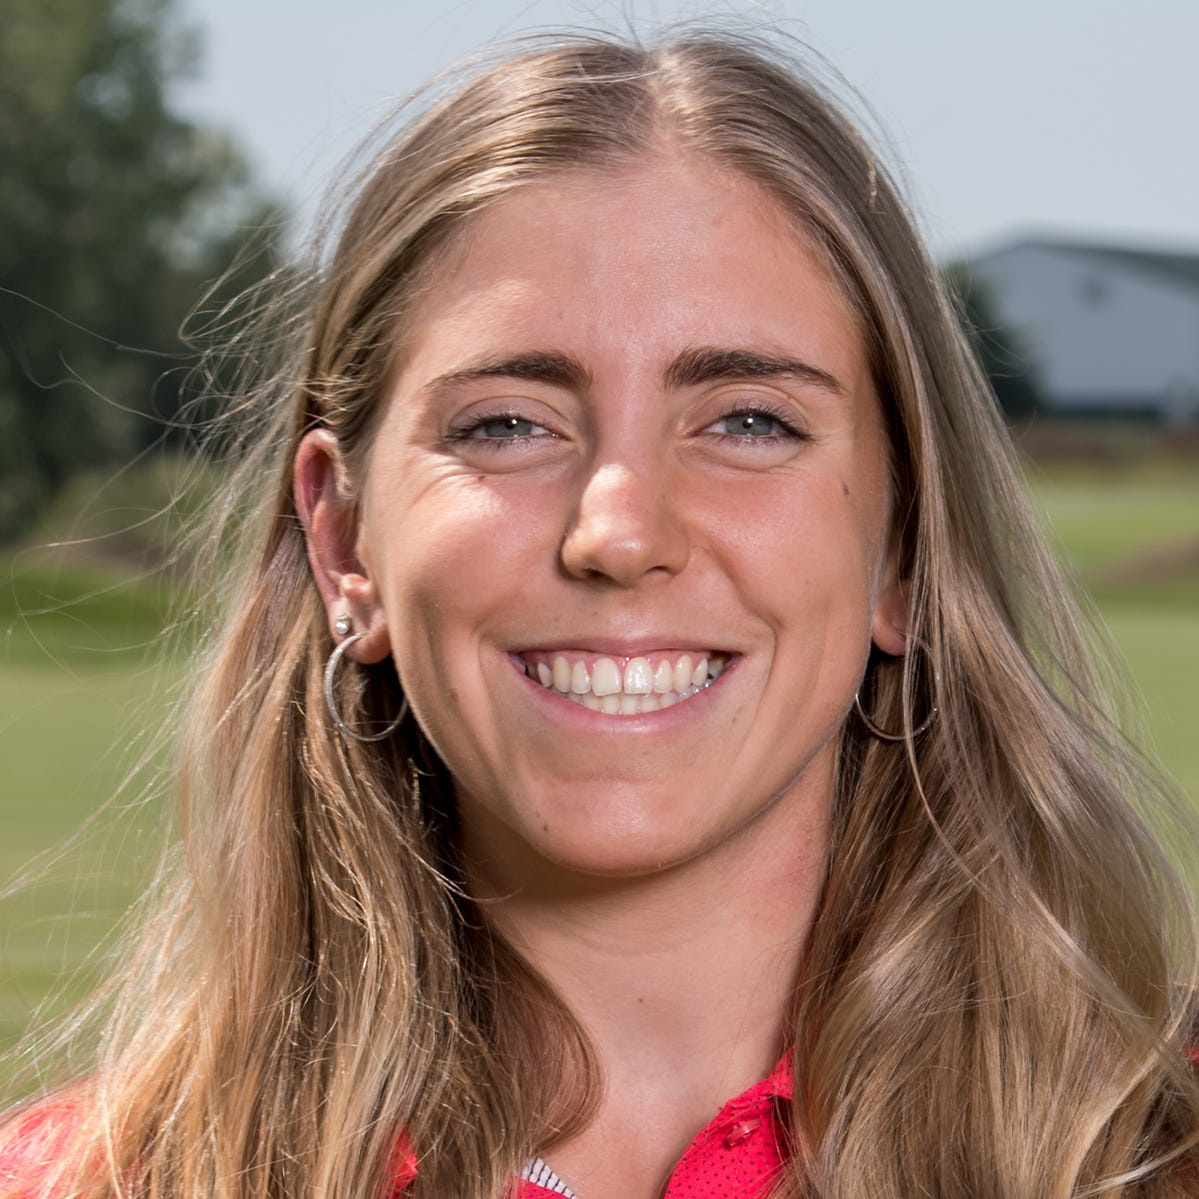 Iowa State women's golf team withdraws from competition to grieve slain former teammate